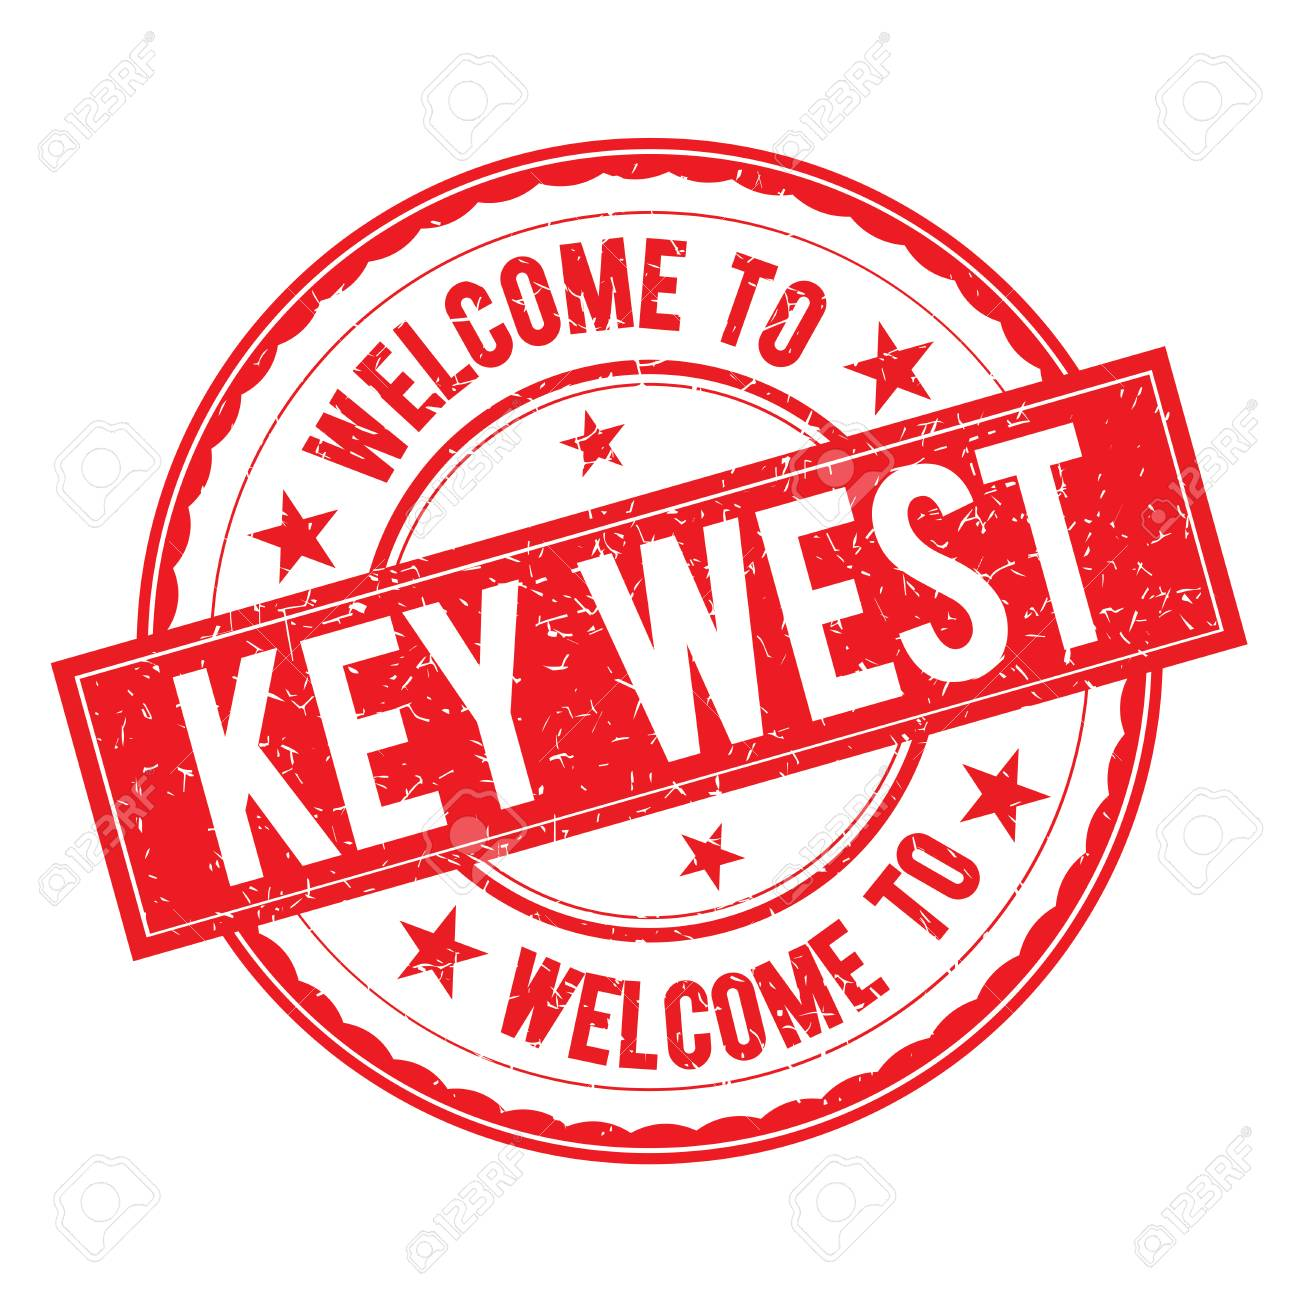 Welcome to KEY WEST Stamp Icon Sign Vector..